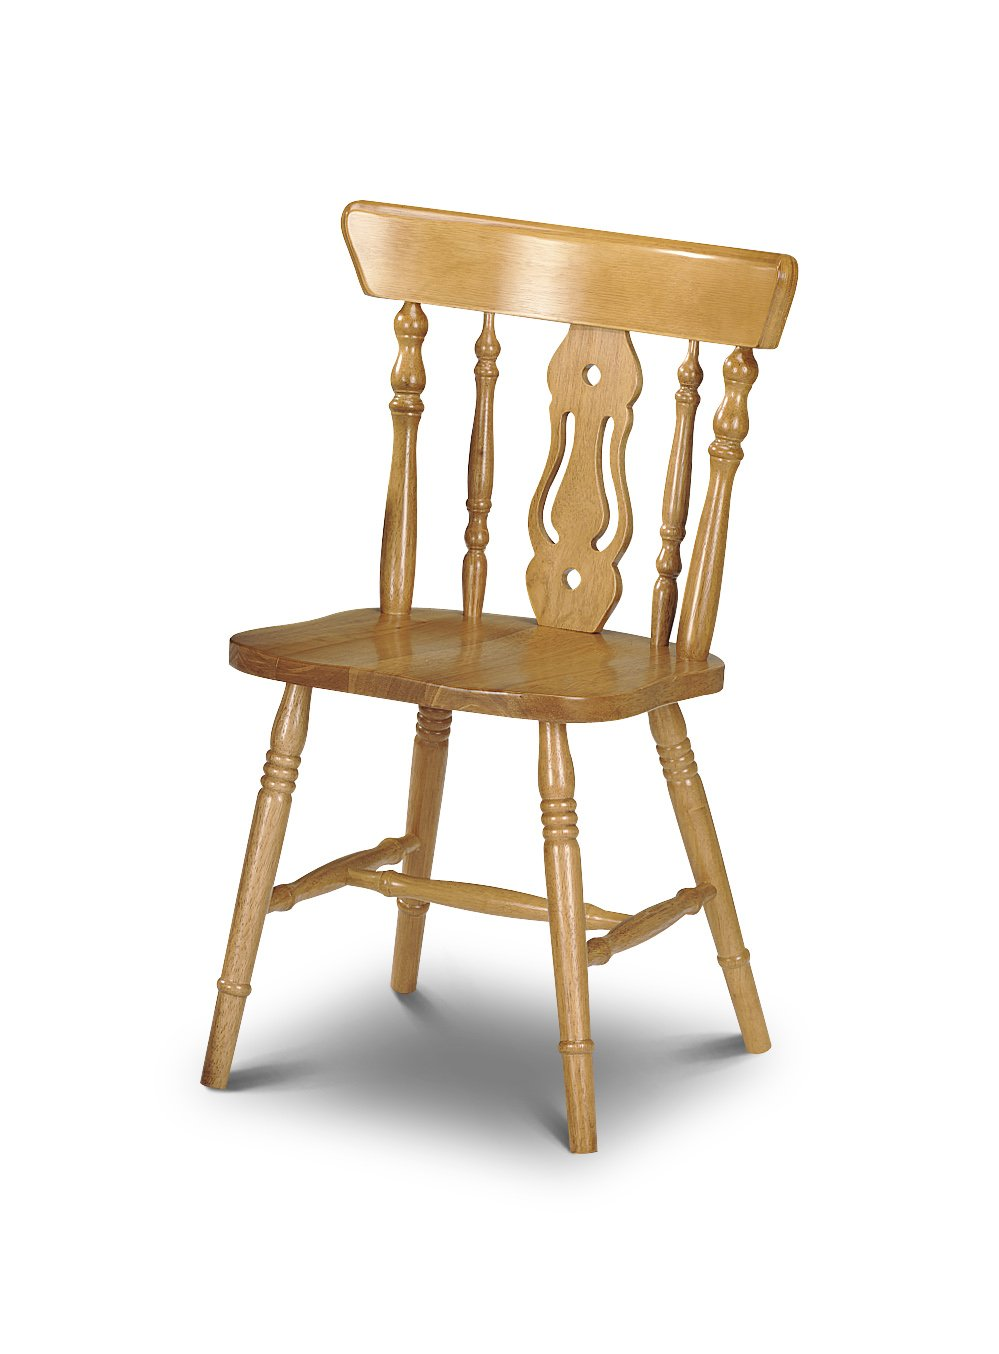 New Solid Beech Spindle Back Wooden Kitchen Chairs: Amazon.co.uk ...